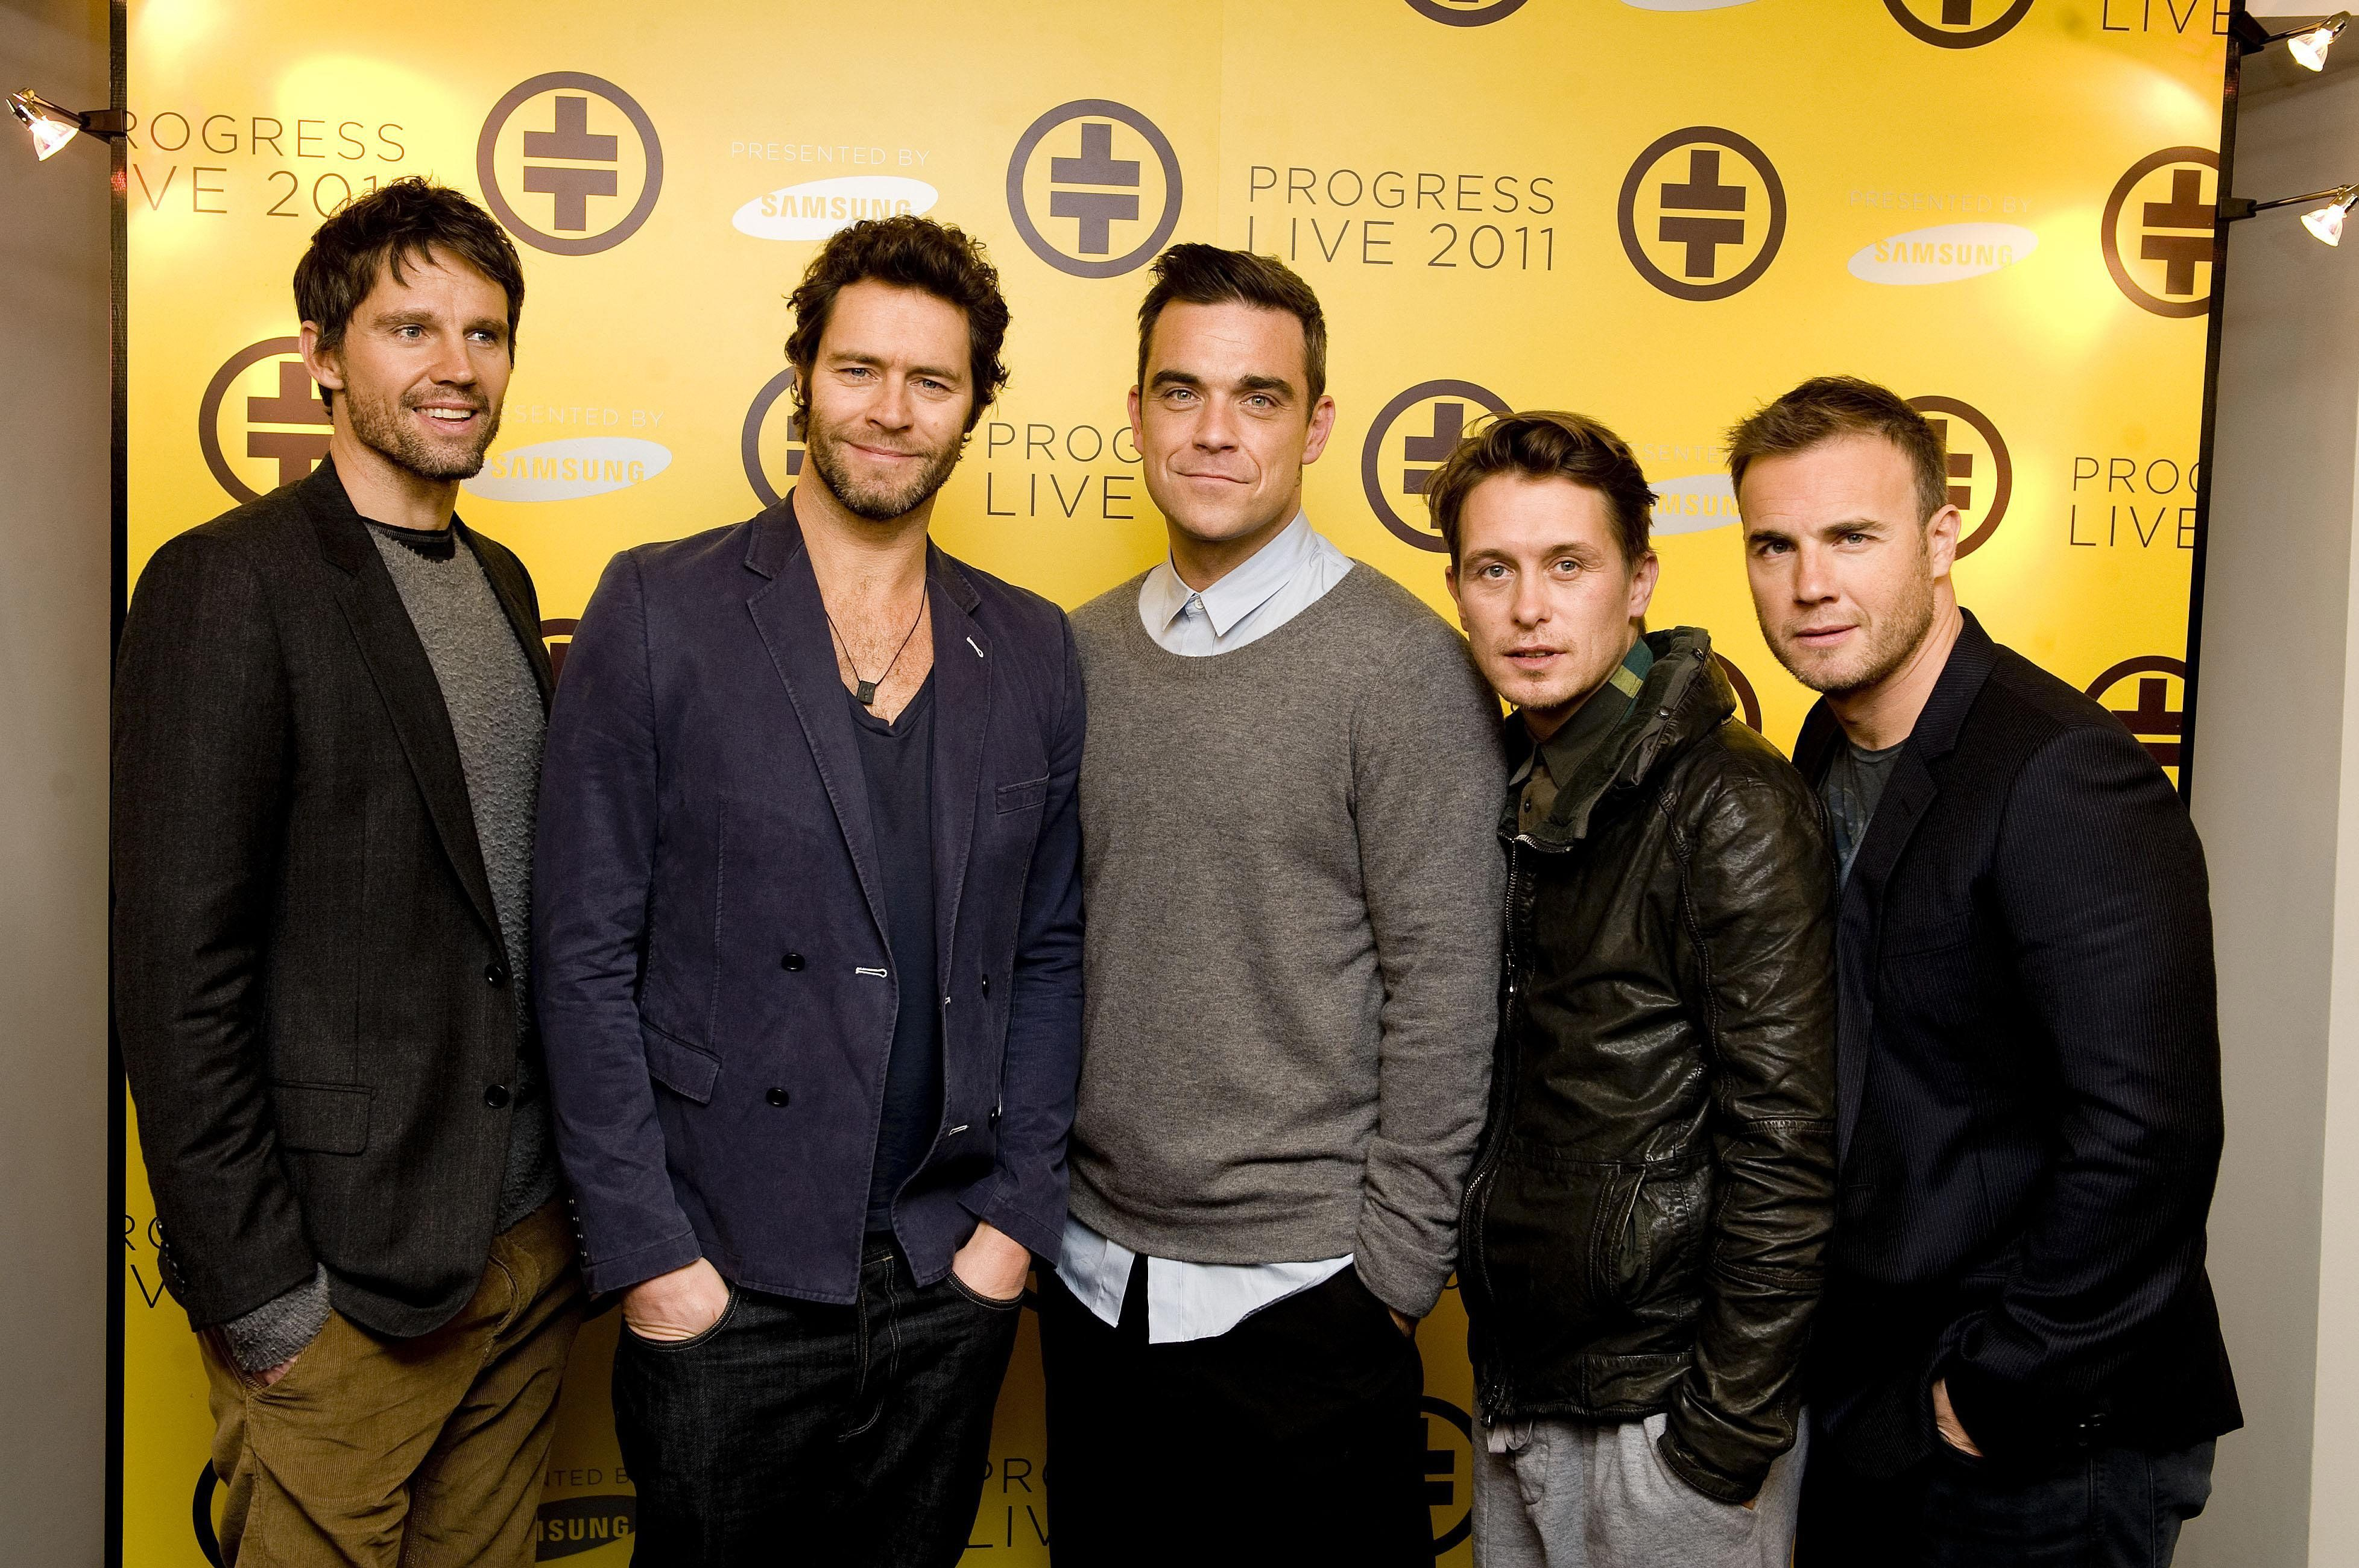 While Robbie is in talks to rejoin, Jason Orange will not